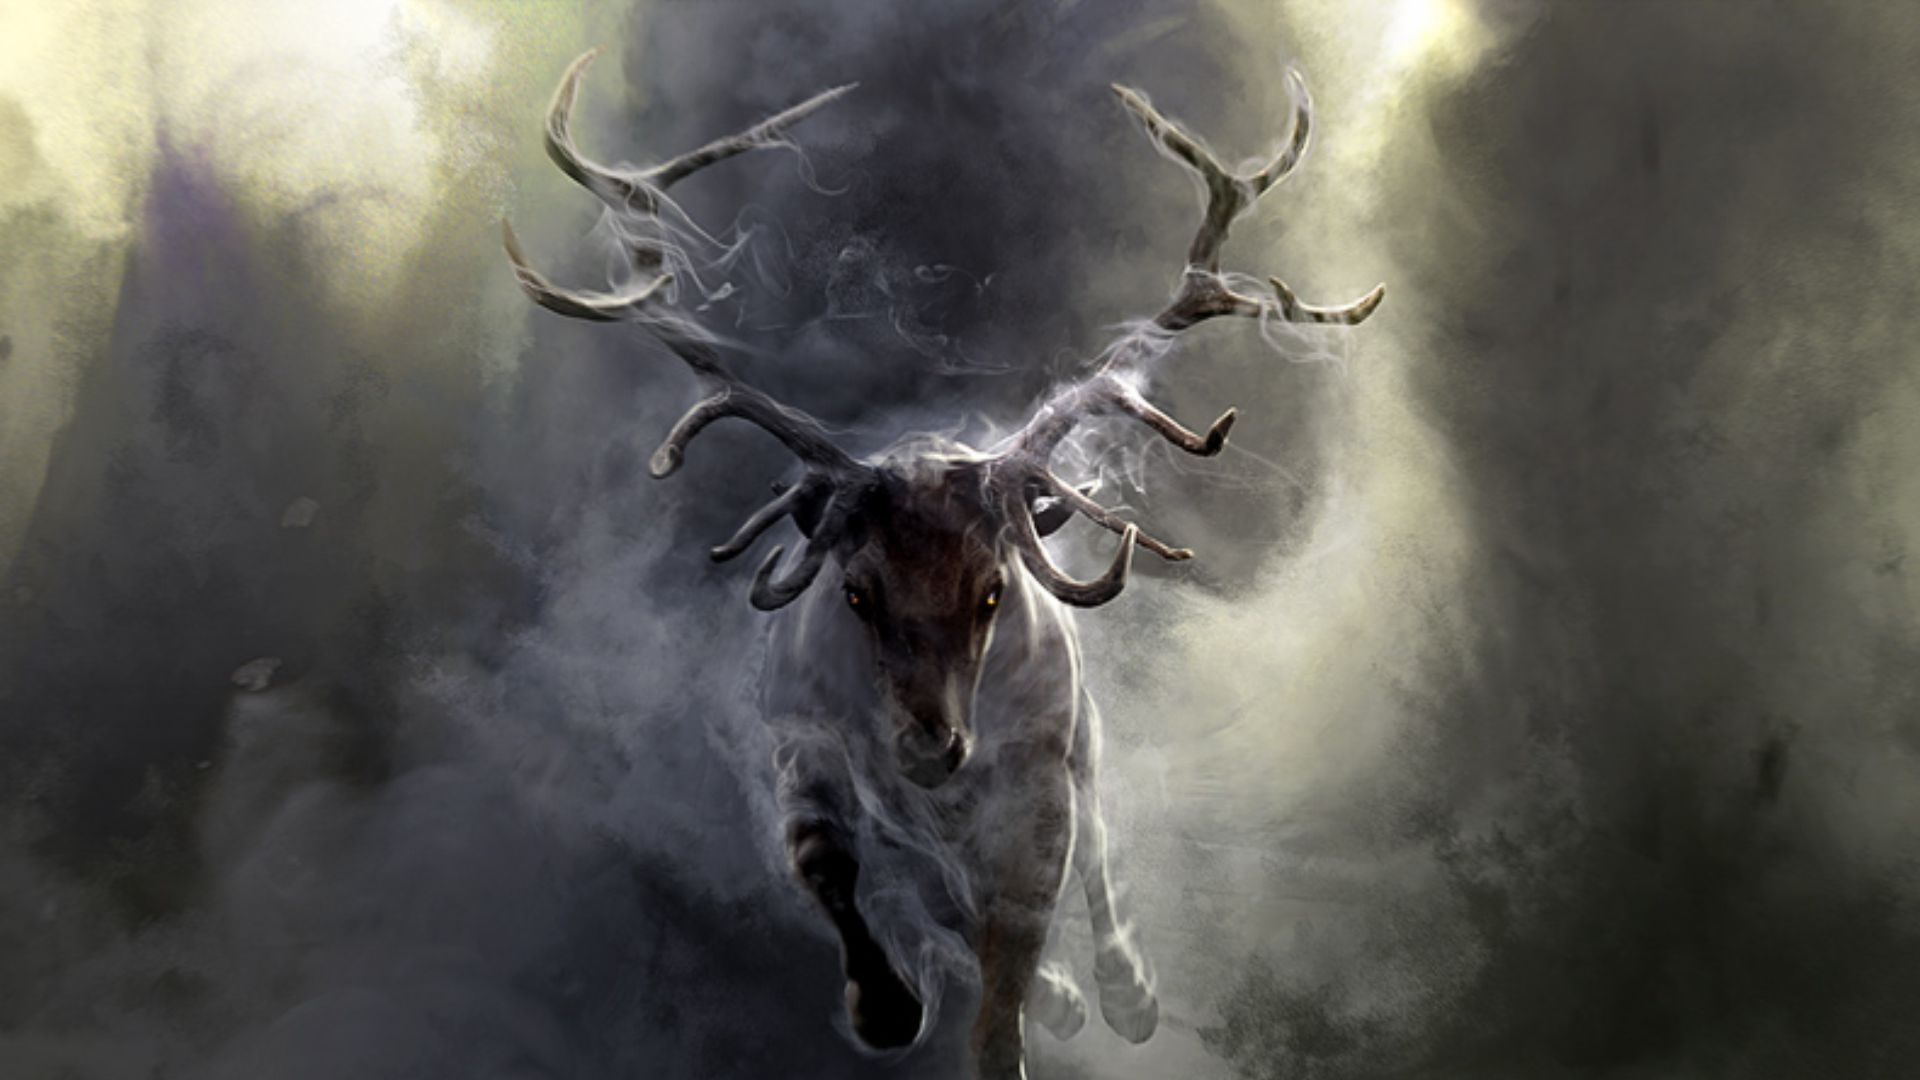 Get The Latest Deer Smoke Run News Pictures And Videos Learn All About From Wallpapers4uorg Your Wallpaper Source